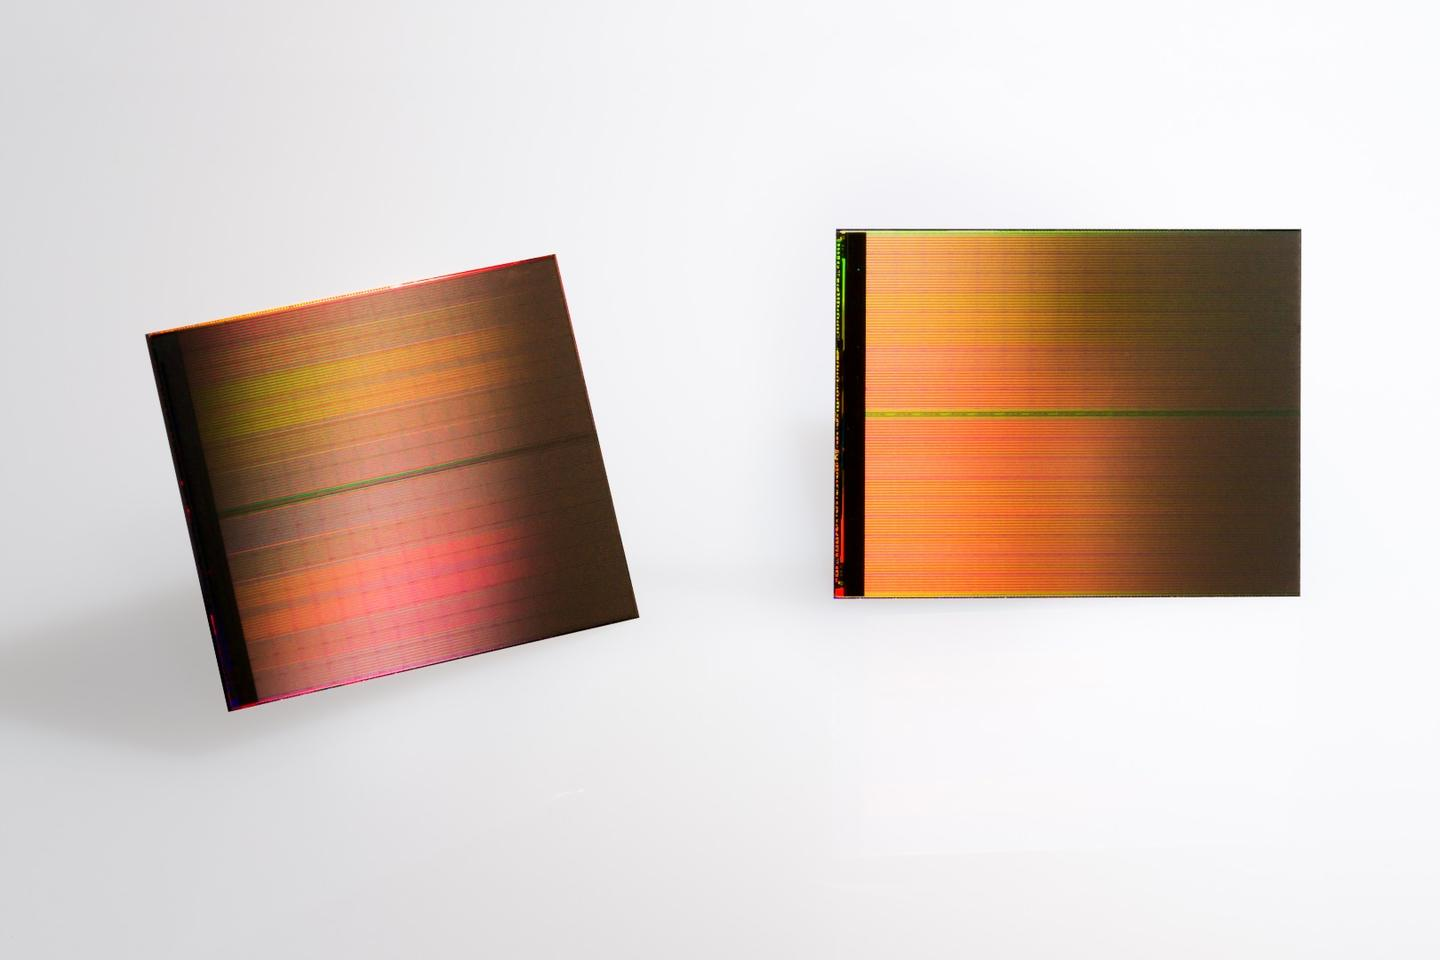 3D Xpoint technology is up to 1000x faster than NAND and an individual die can store 128Gb of data